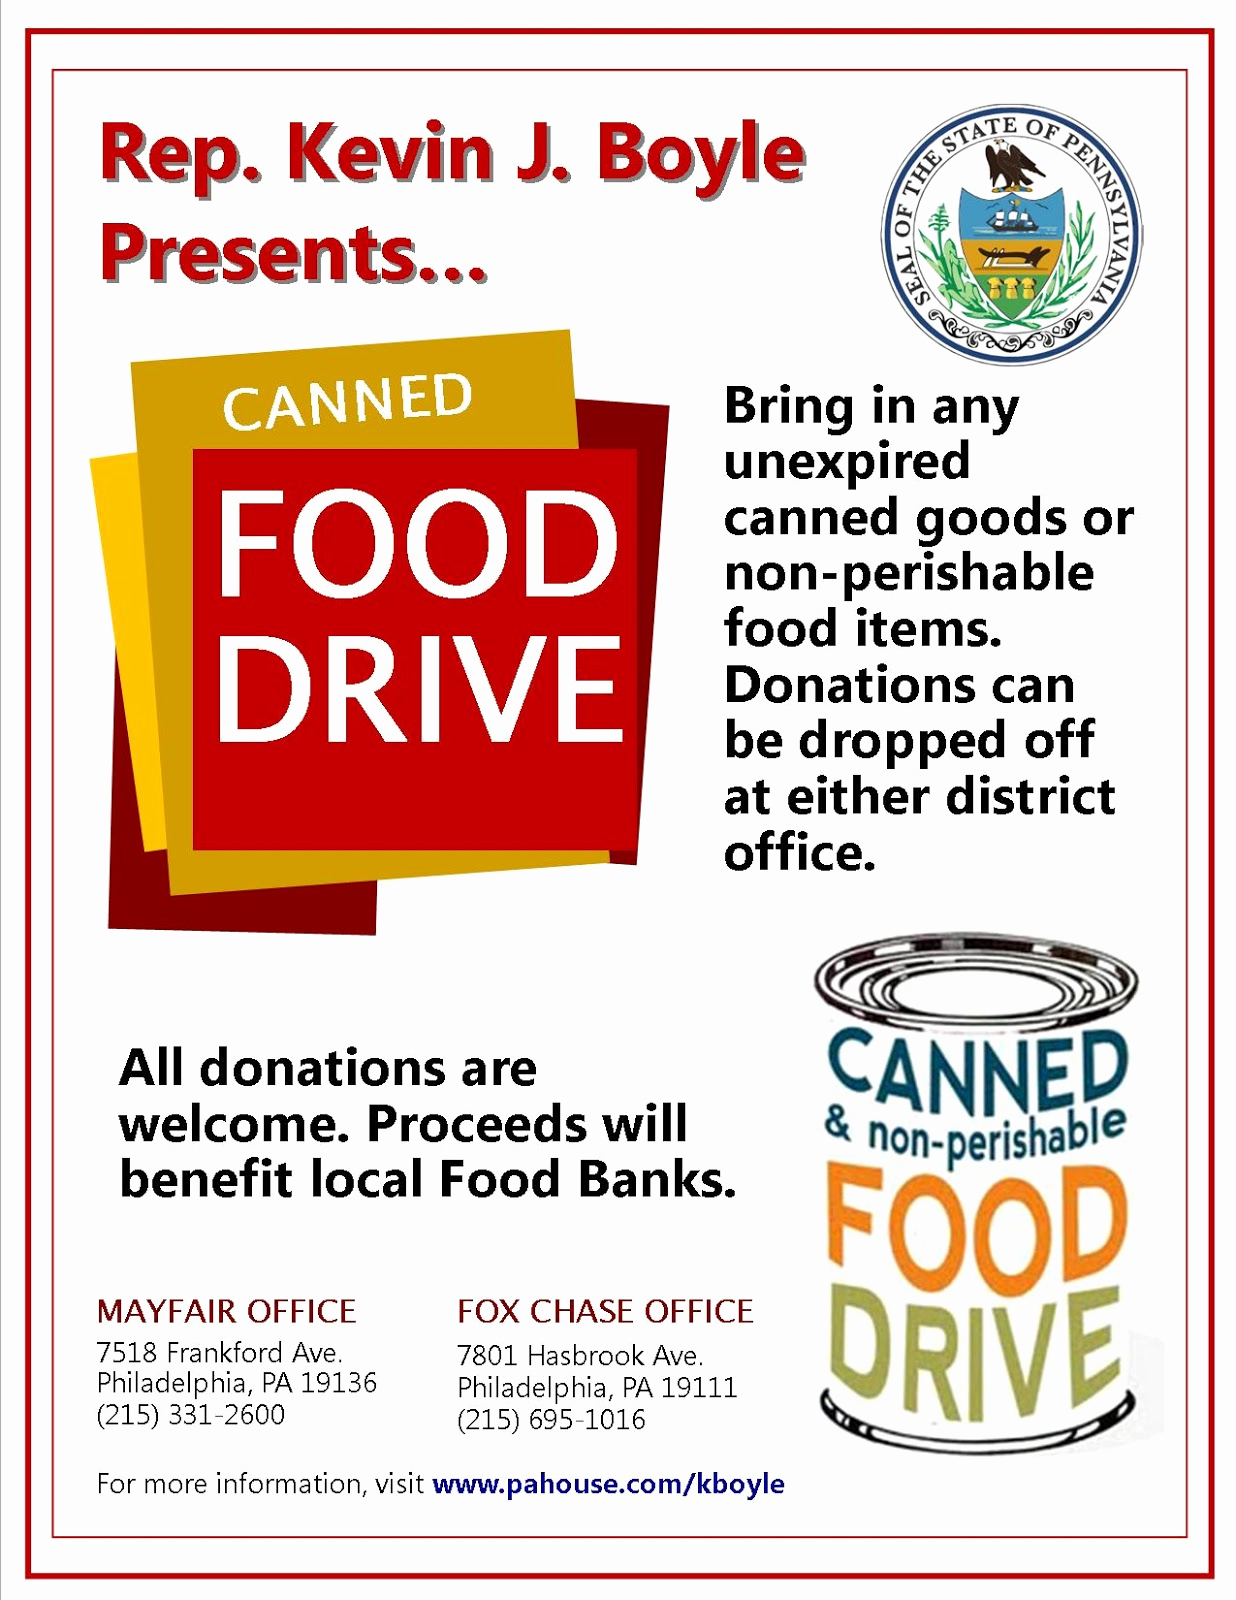 Canned Food Drive Flyer Beautiful Mayfair Civic association December 2012